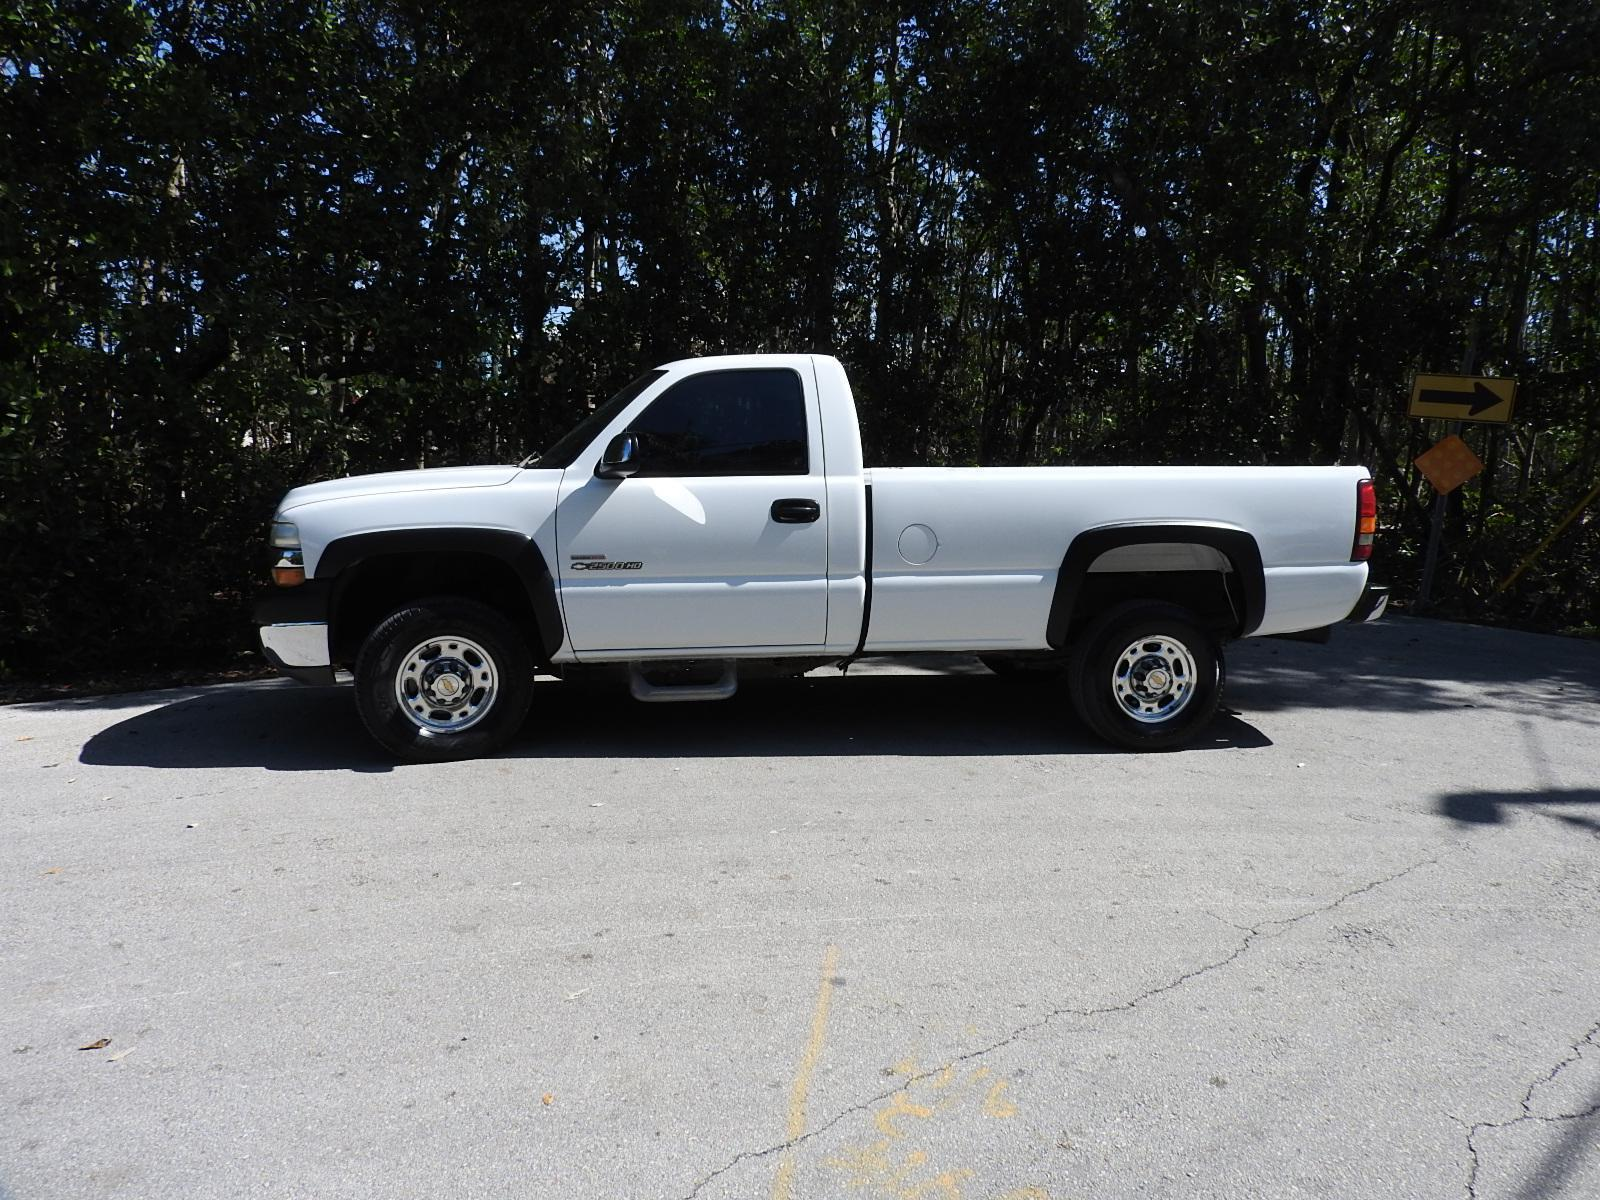 2002 Chevrolet 2500hd Duramax sel for sale in Key Largo FL